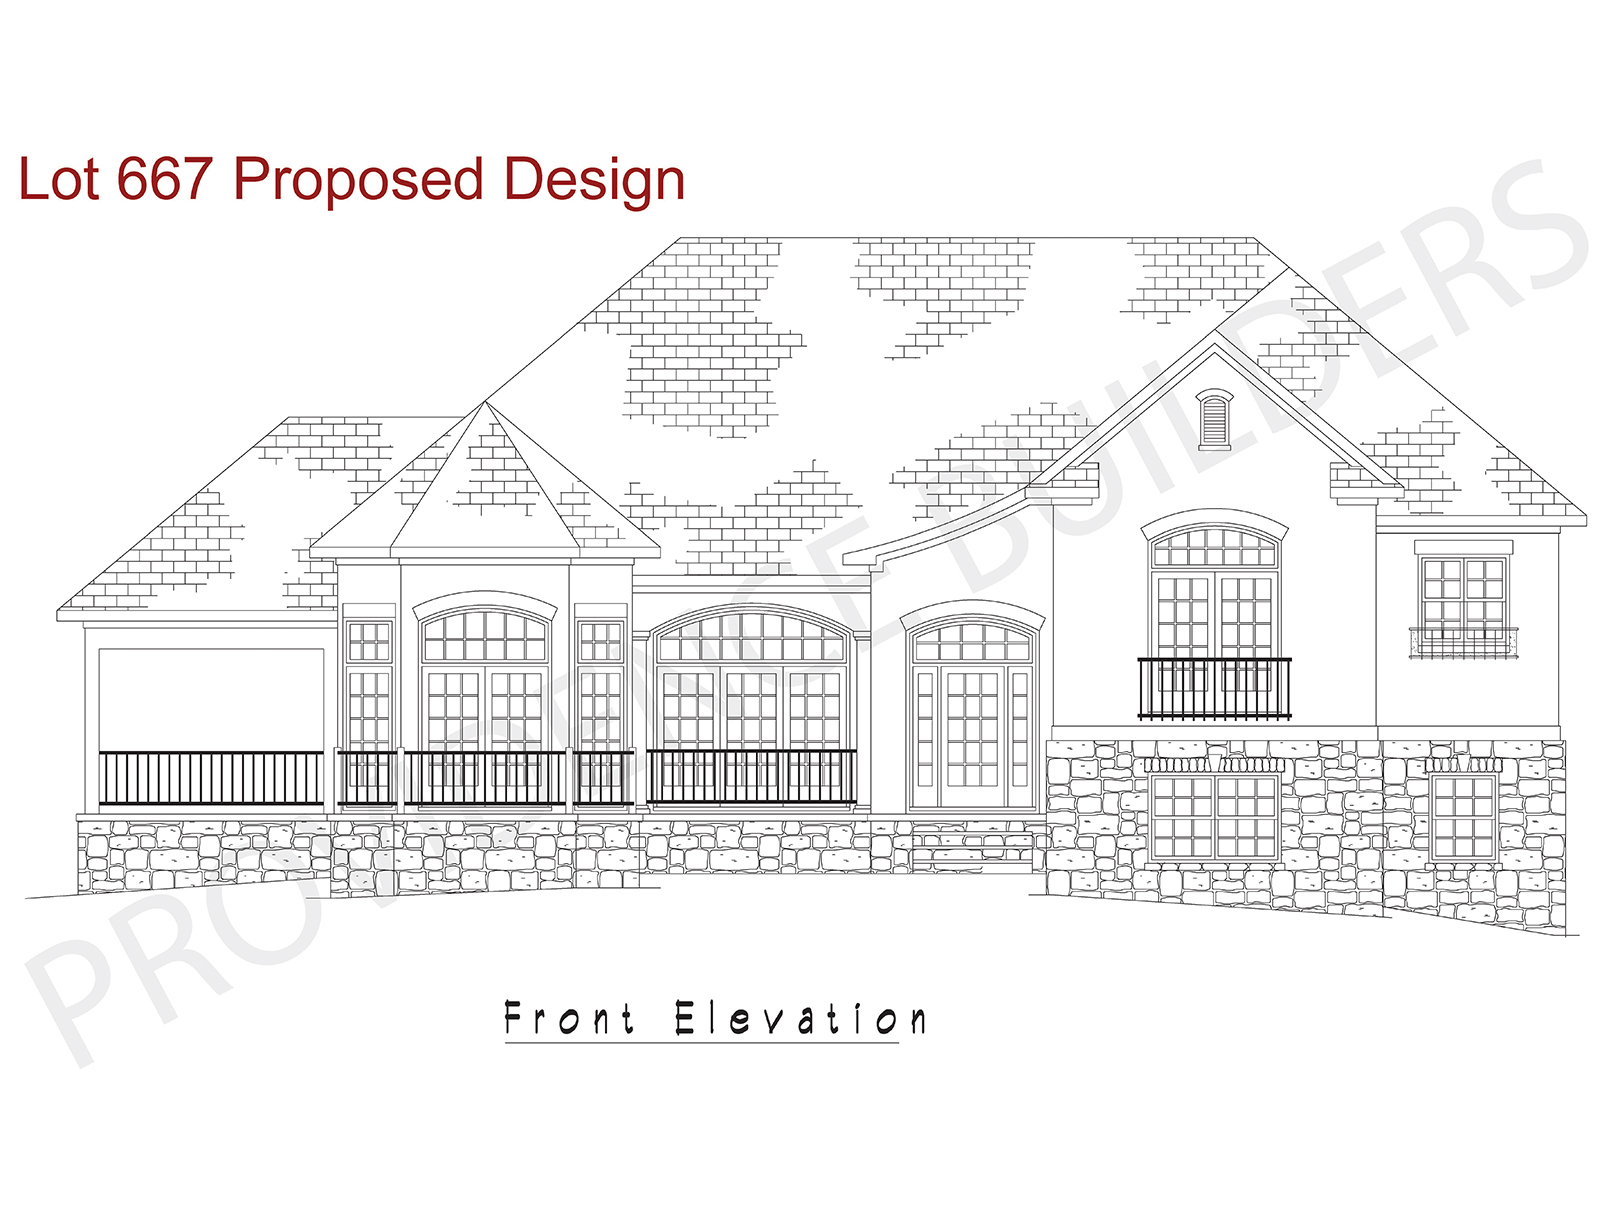 Lot 667 Front Elevation